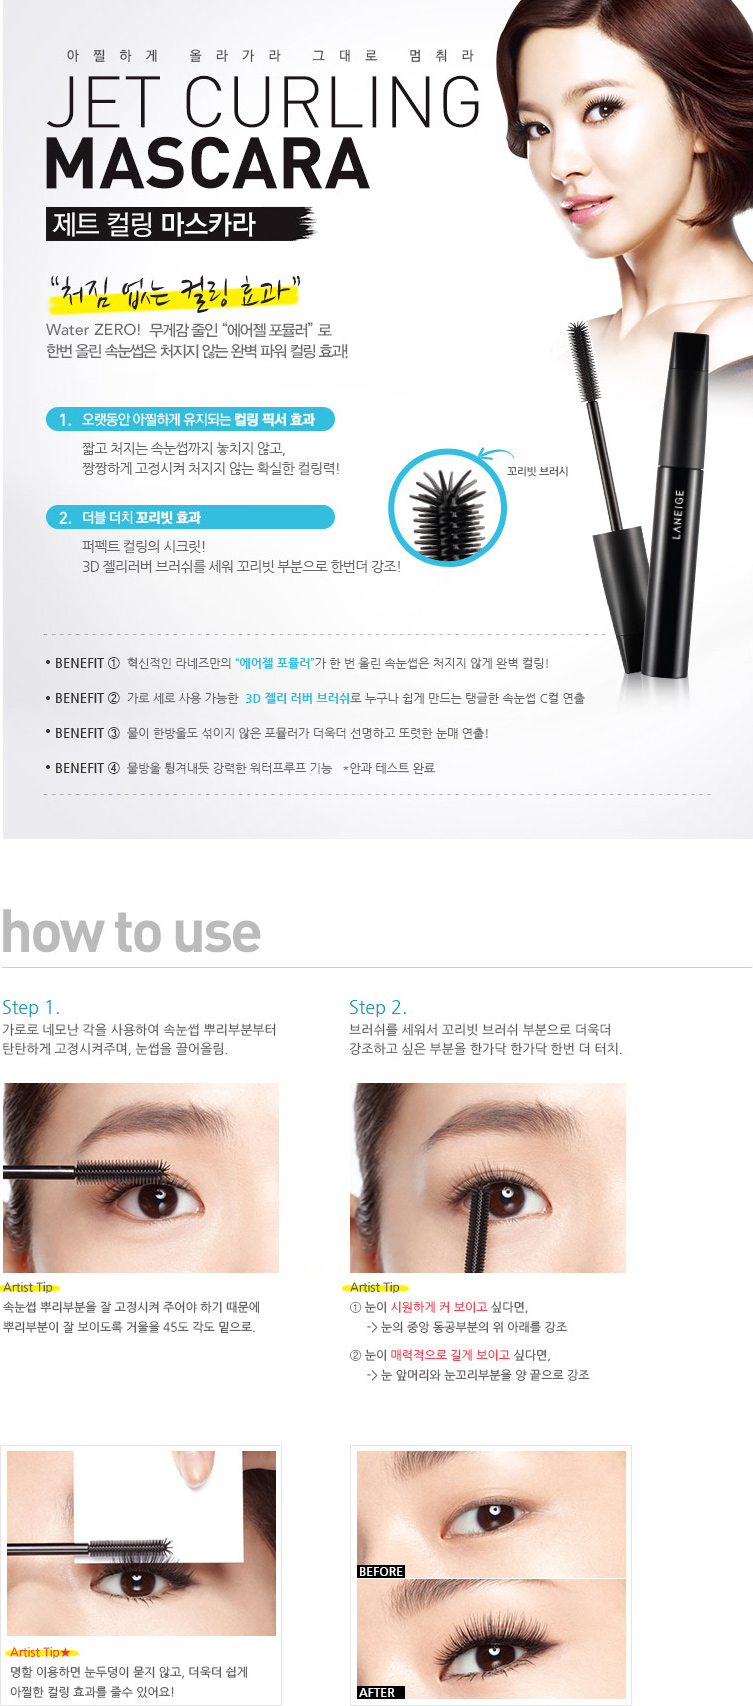 Laneige Jet Curling Mascara Description